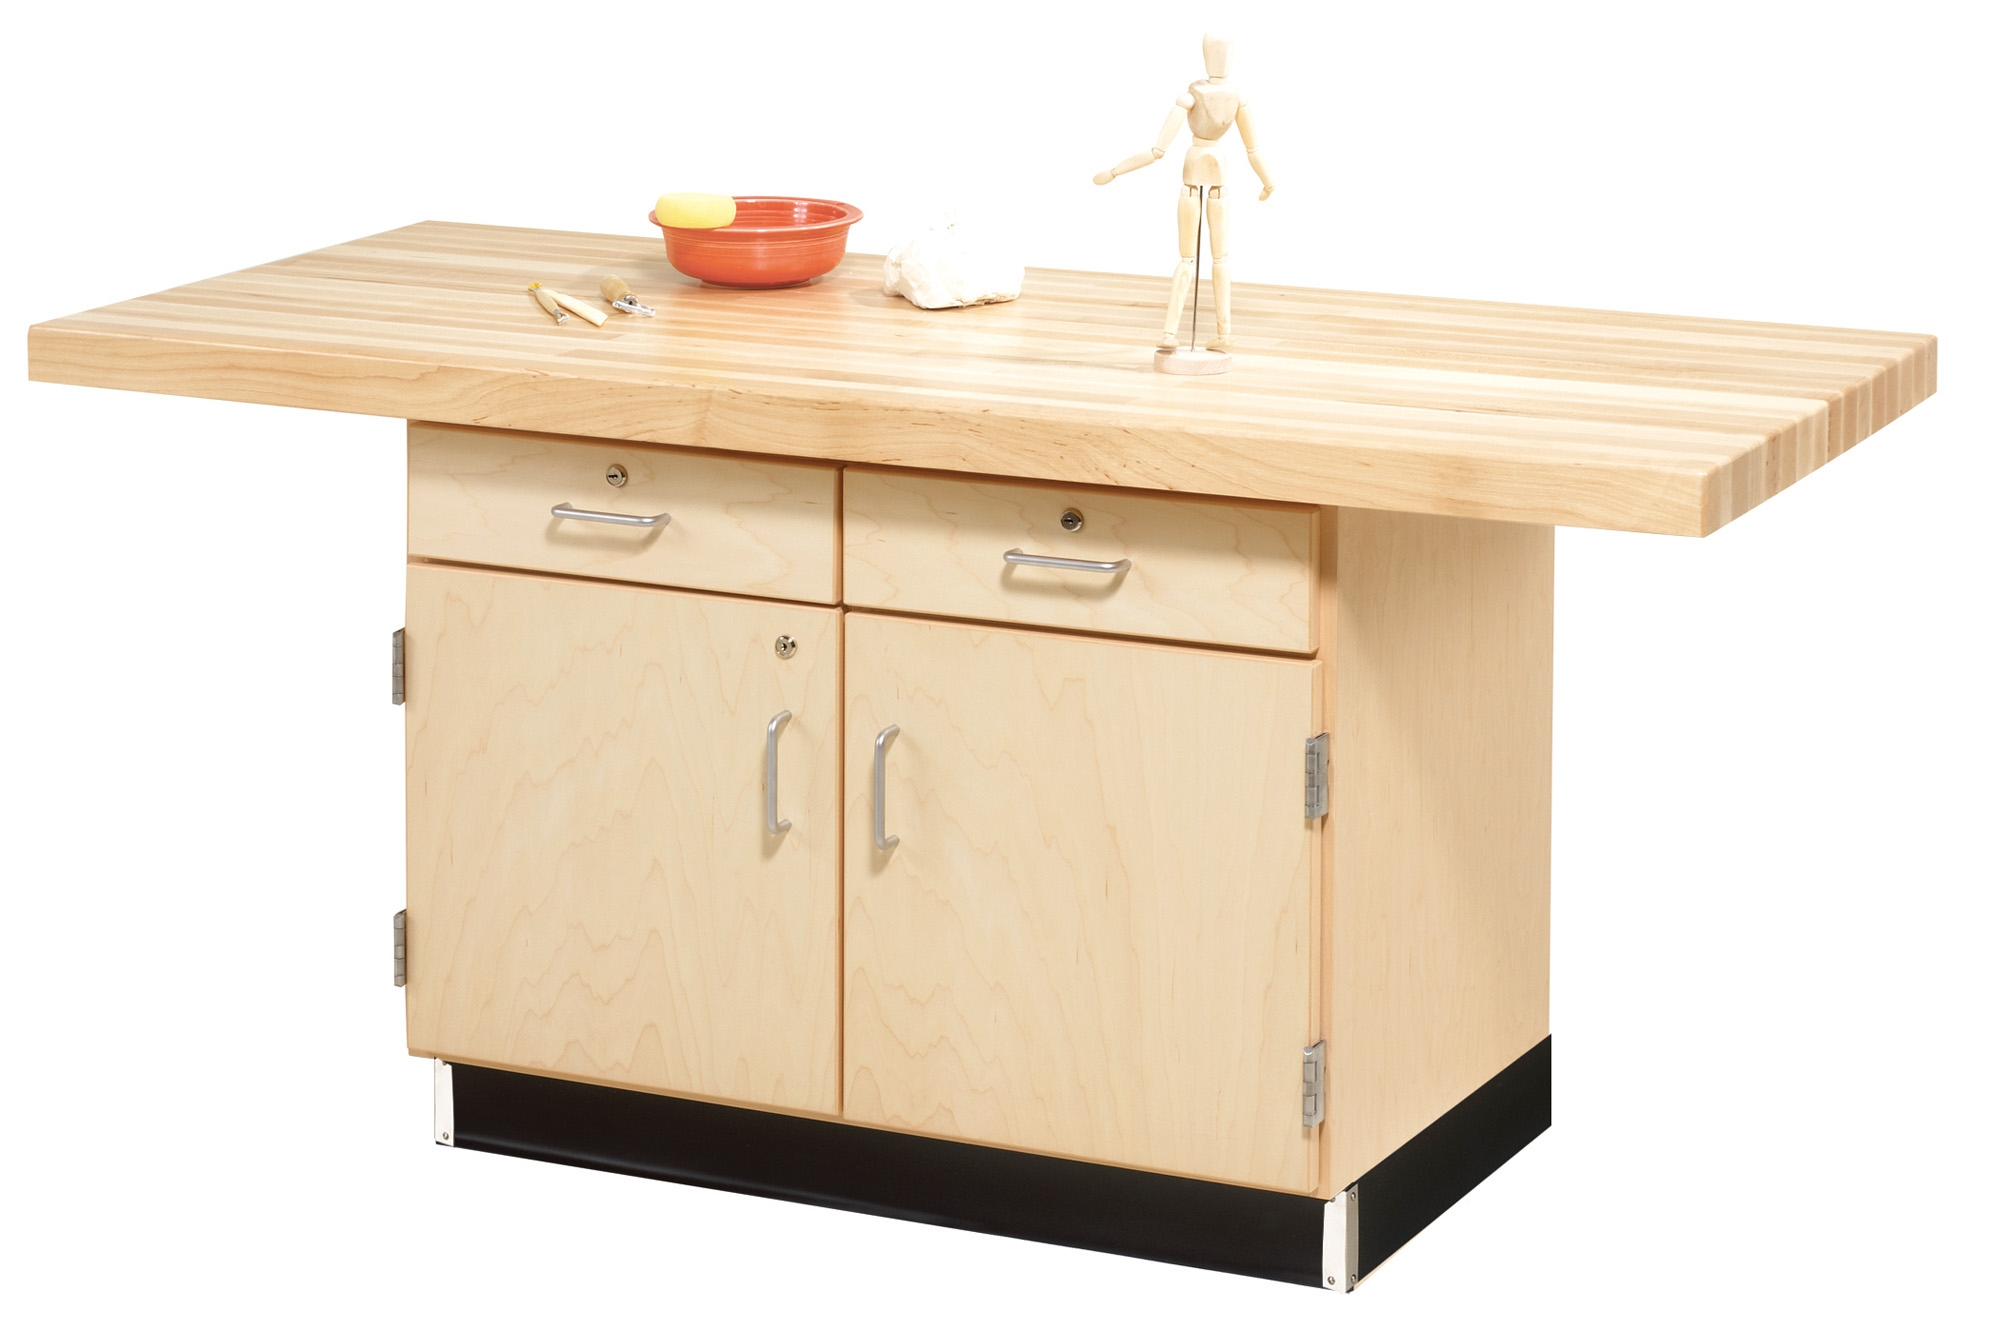 Diversified Woodcrafts 2 Station Workbench with Cabinet and Drawers